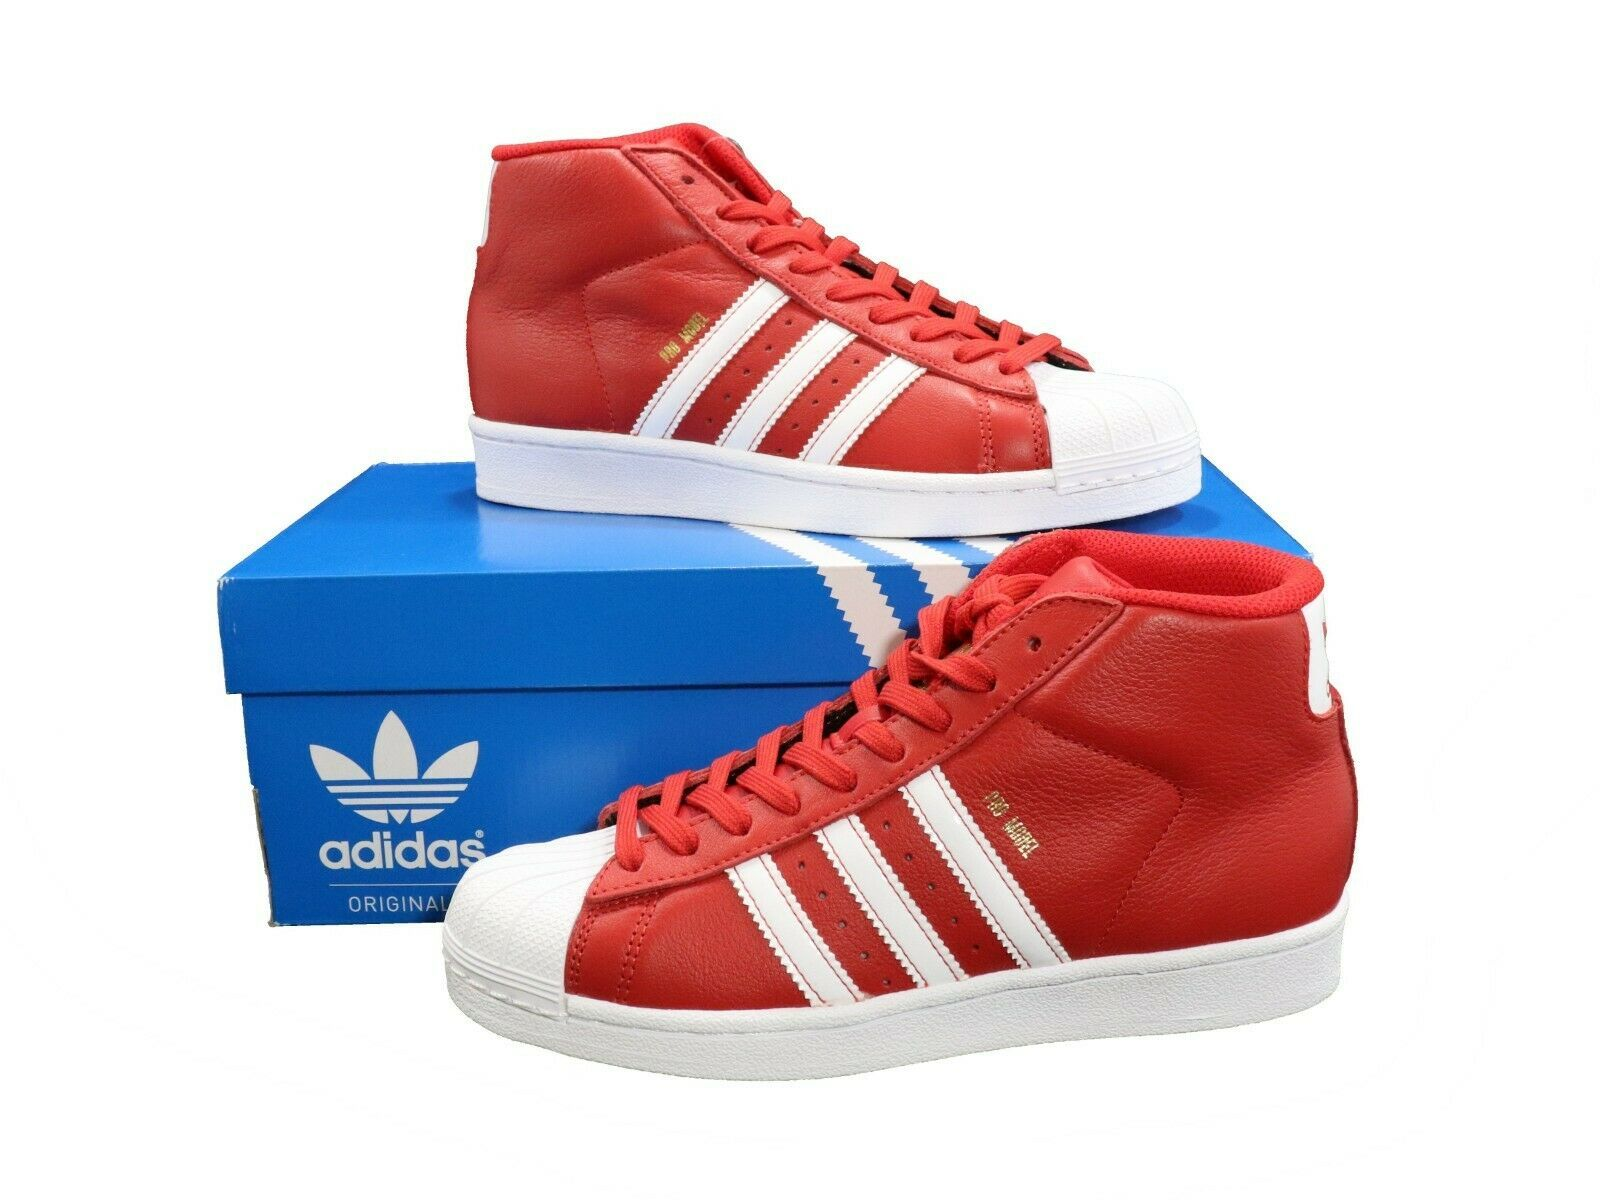 ADIDAS Youth Pro Model Mid Top Shoes sz 4.5Y and 50 similar items